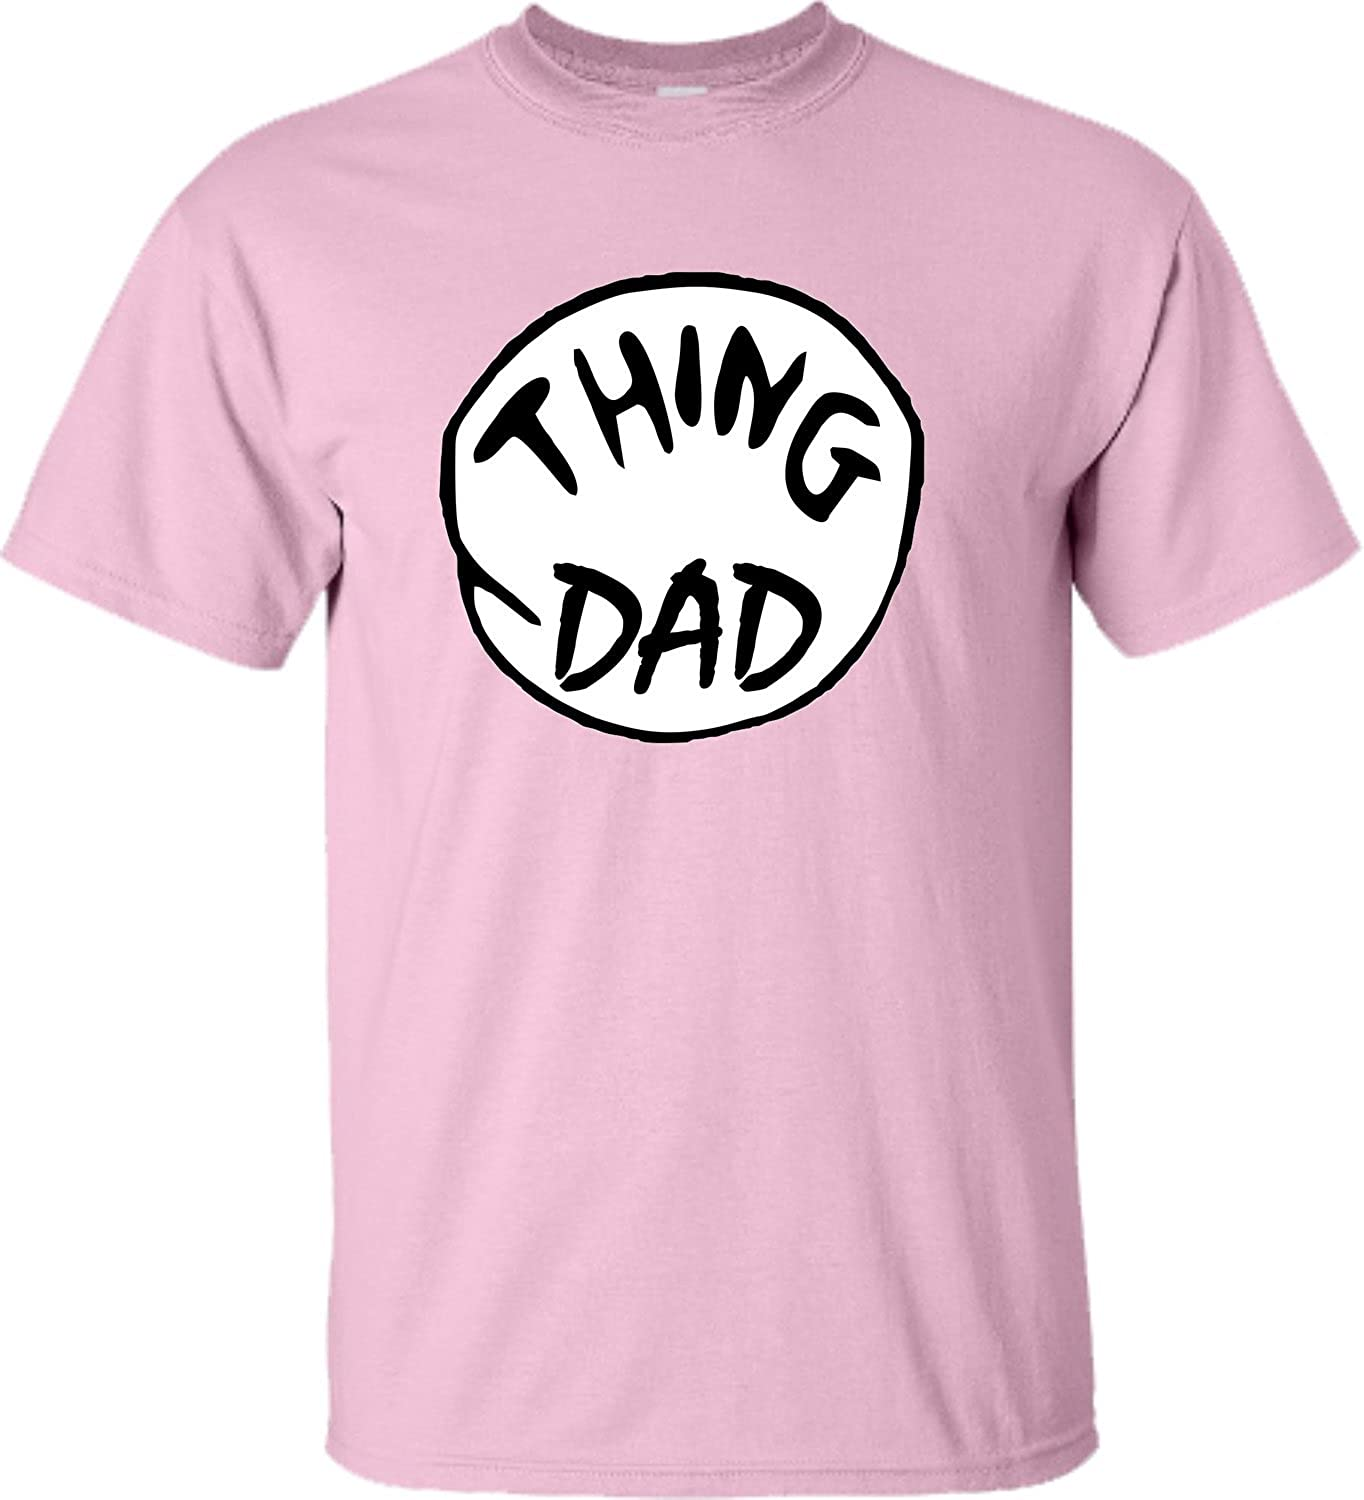 New Way - 220 Unisex T-Shirt THING DAD